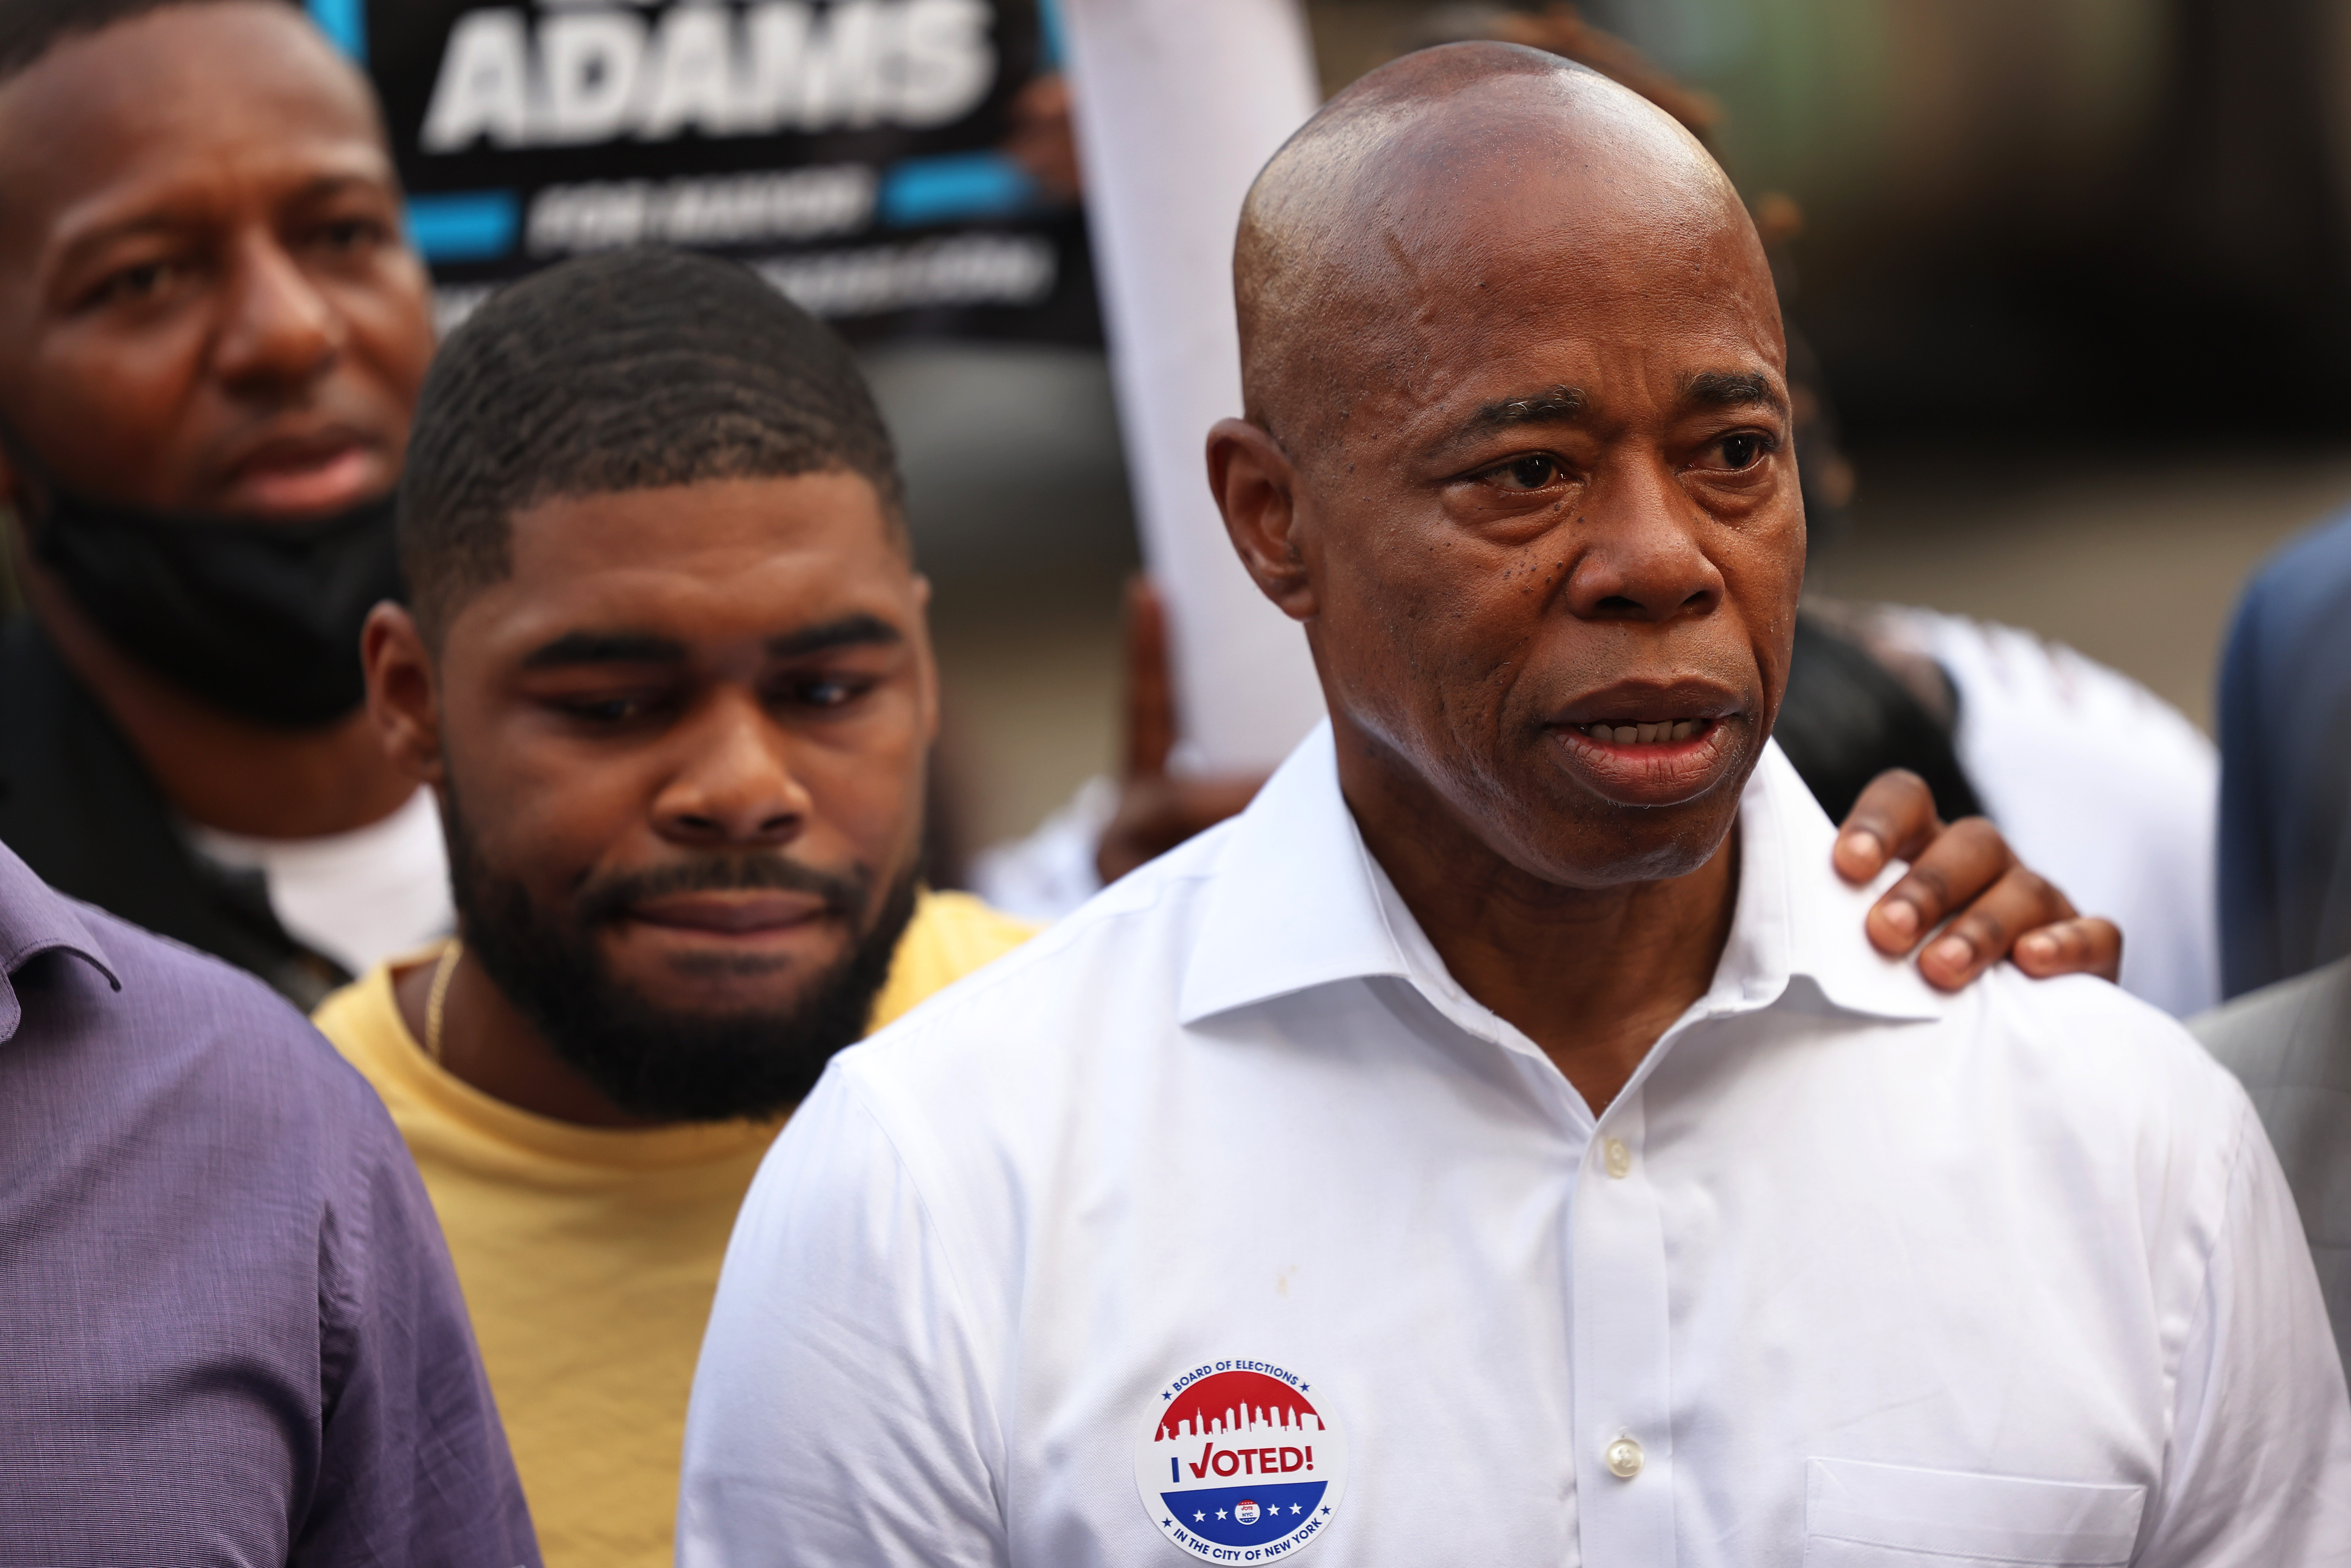 New York City mayoral candidate Eric Adams speaks after voting during Primary Election Day at P.S. 81 on June 22, 2021 in the Bedford-Stuyvesant neighborhood of Brooklyn borough in New York City.